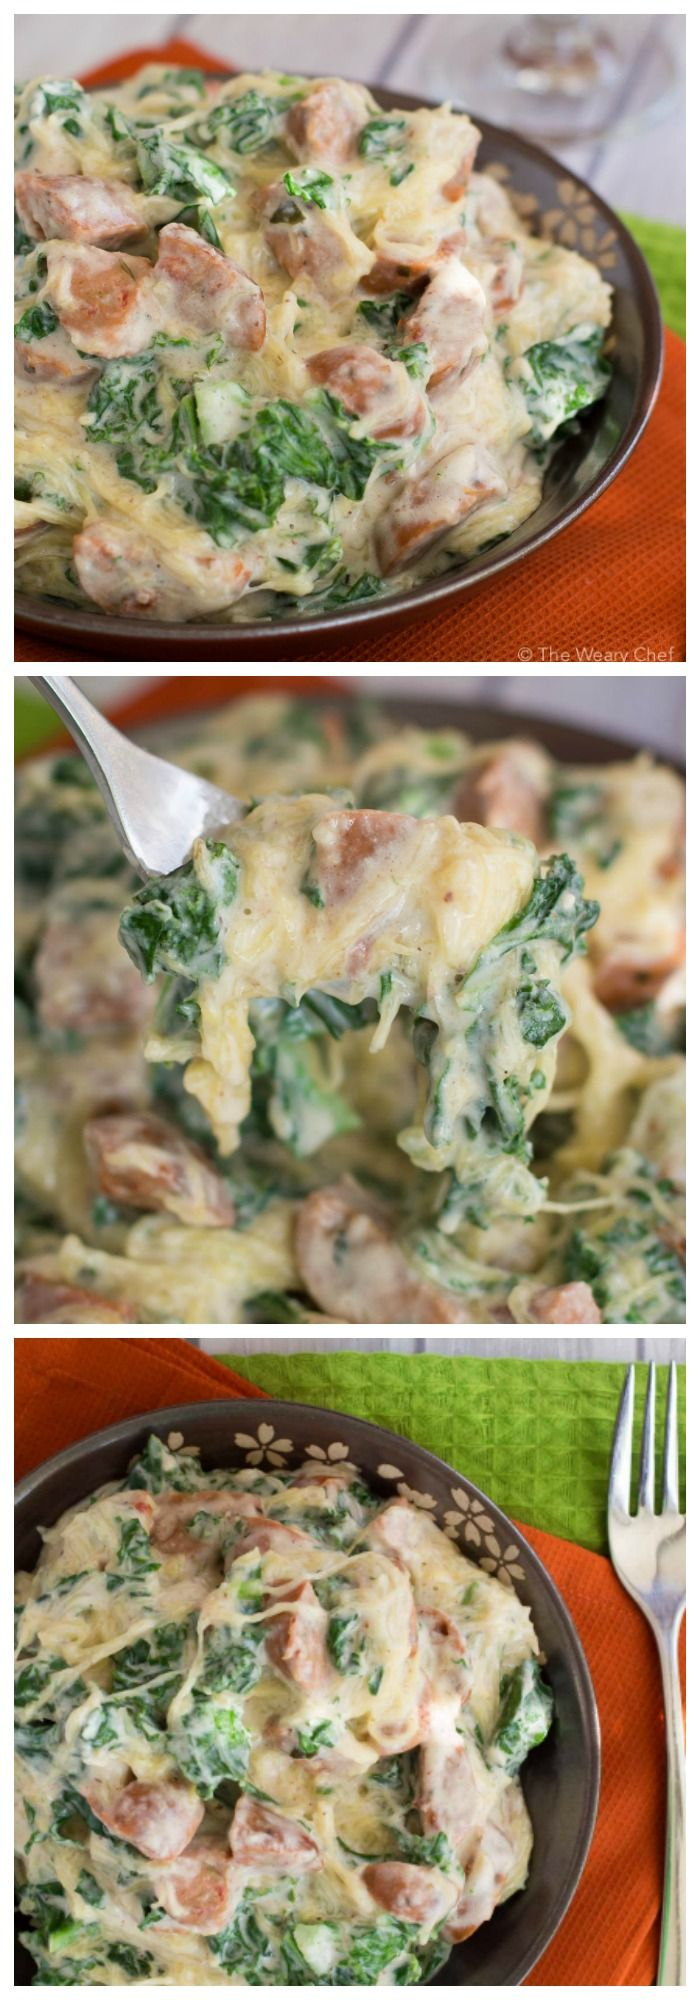 Check out this super healthy sausage alfredo recipe that includes kale and spaghetti squash. It's a guilt-free as comfort food gets!